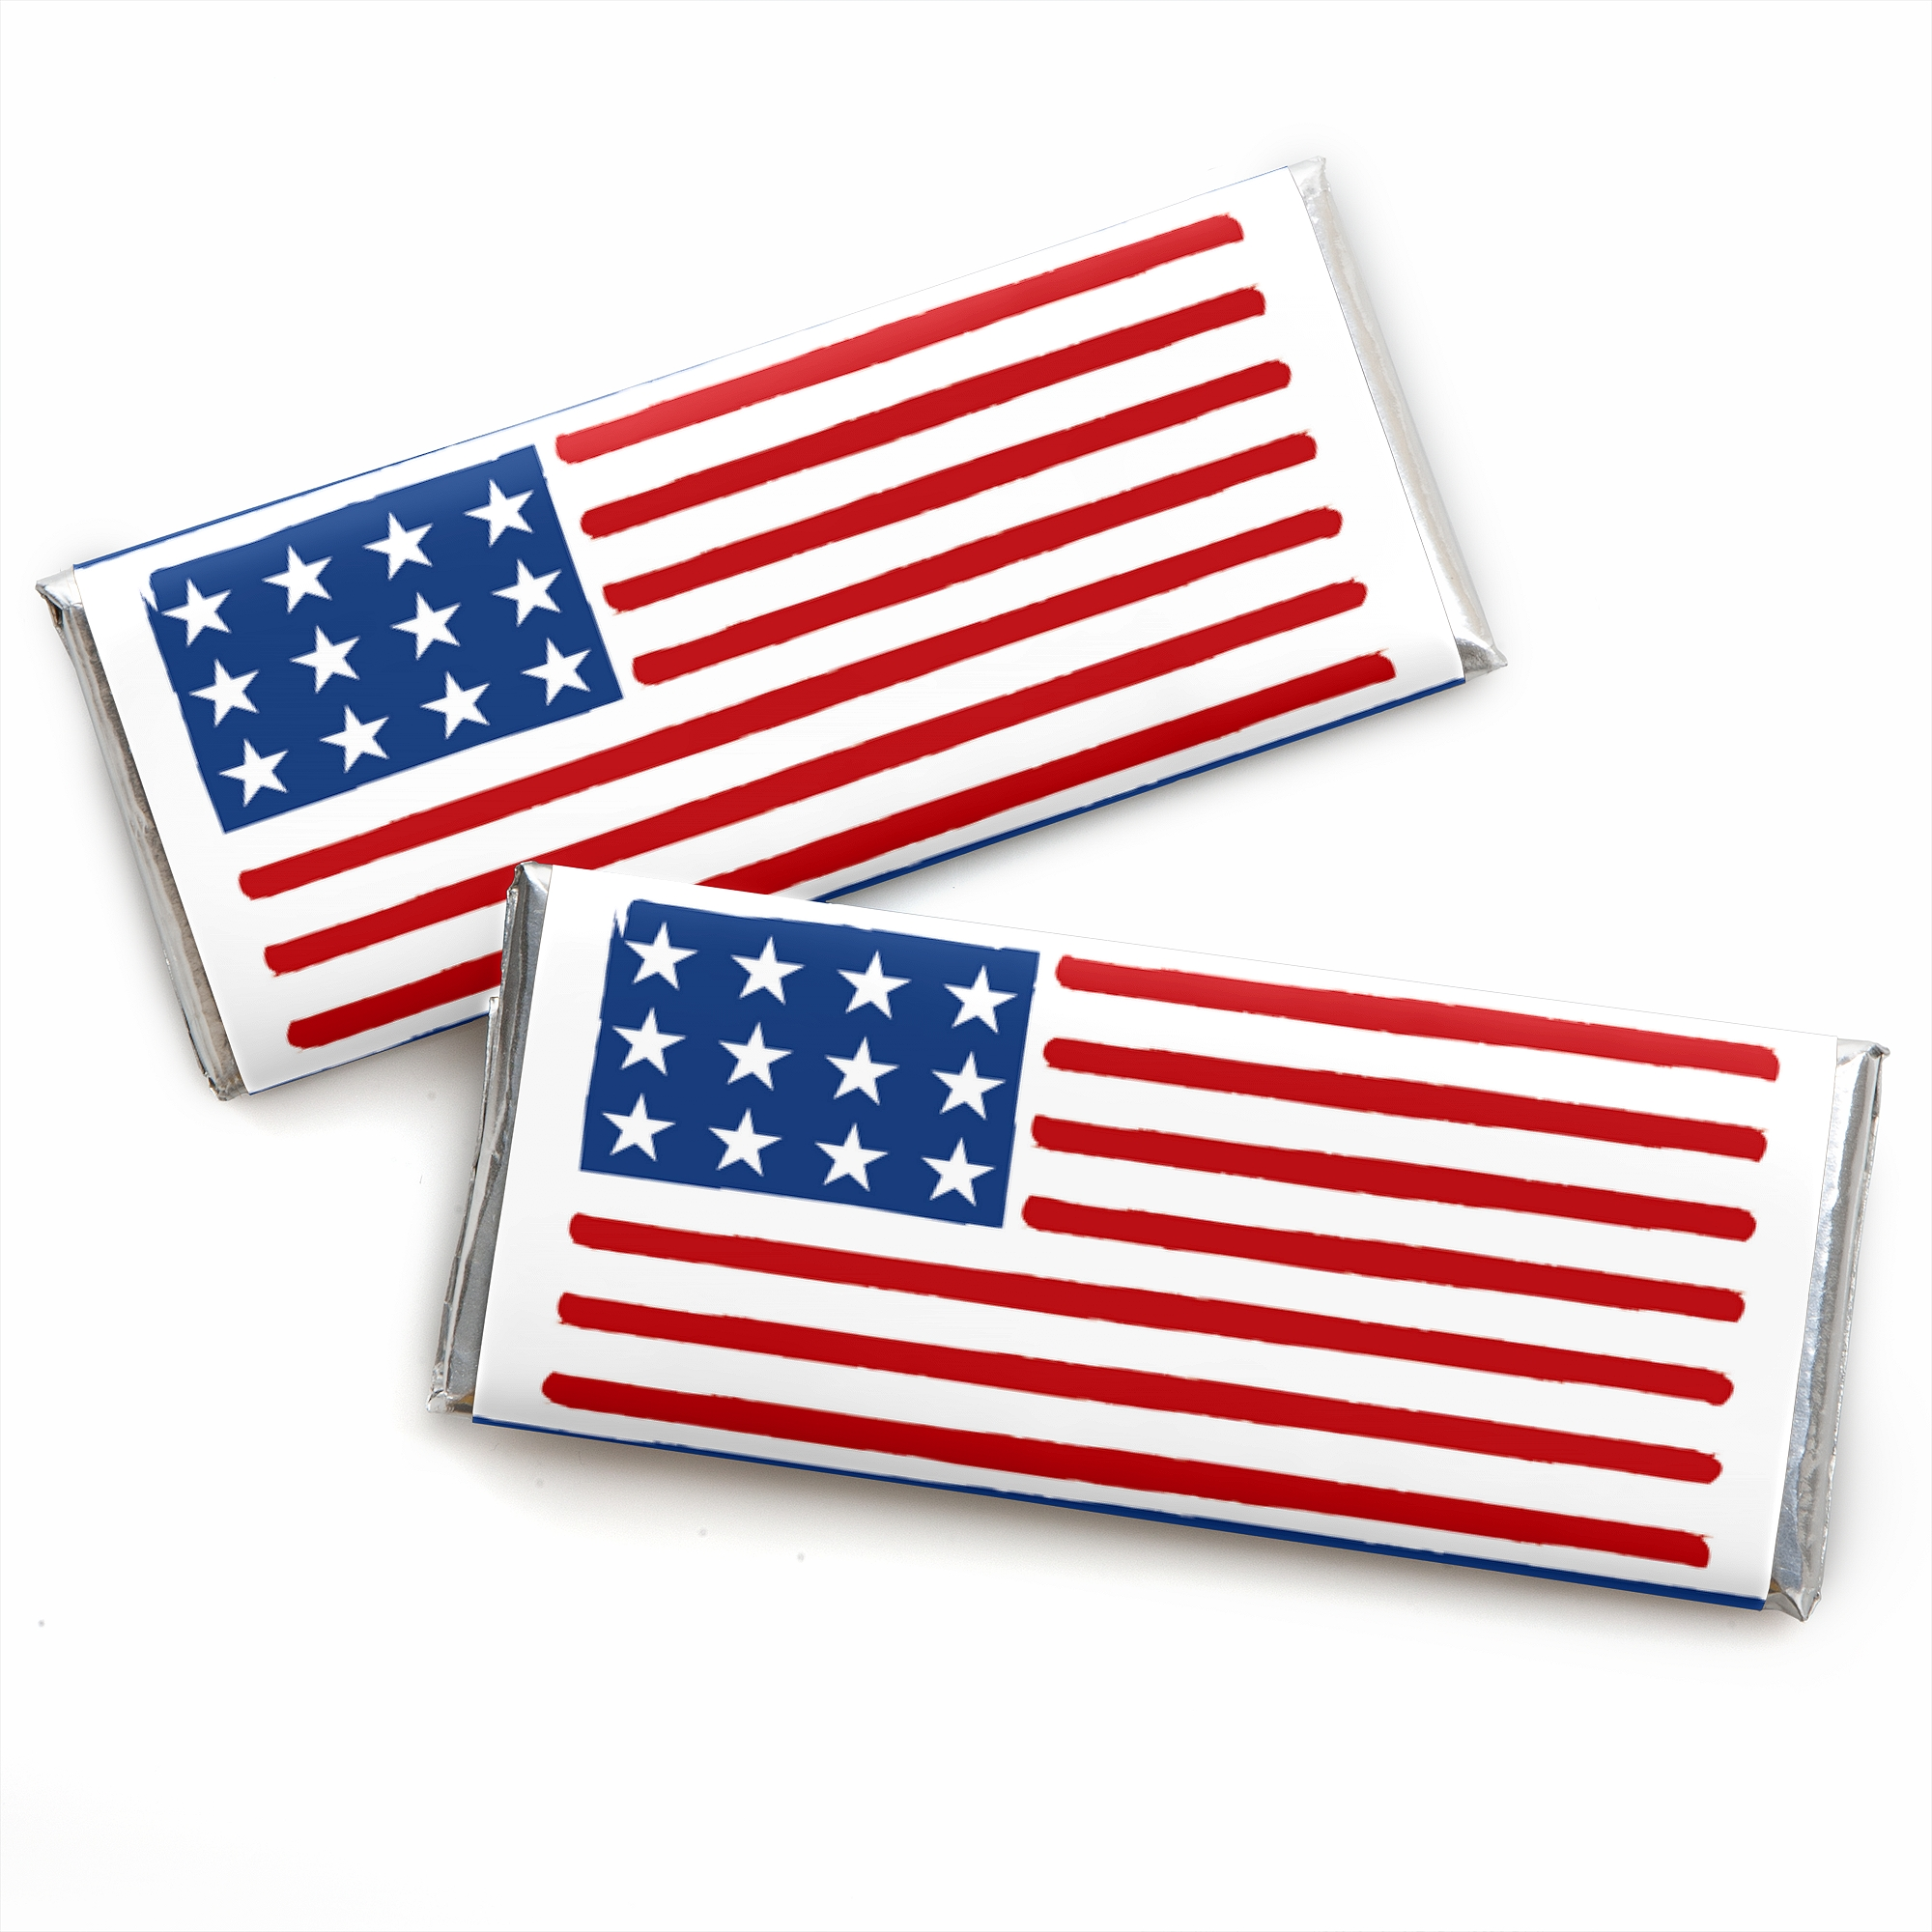 Stars & Stripes - Candy Bar Wrapper Memorial Day Patriotic Party Favors - Set of 24